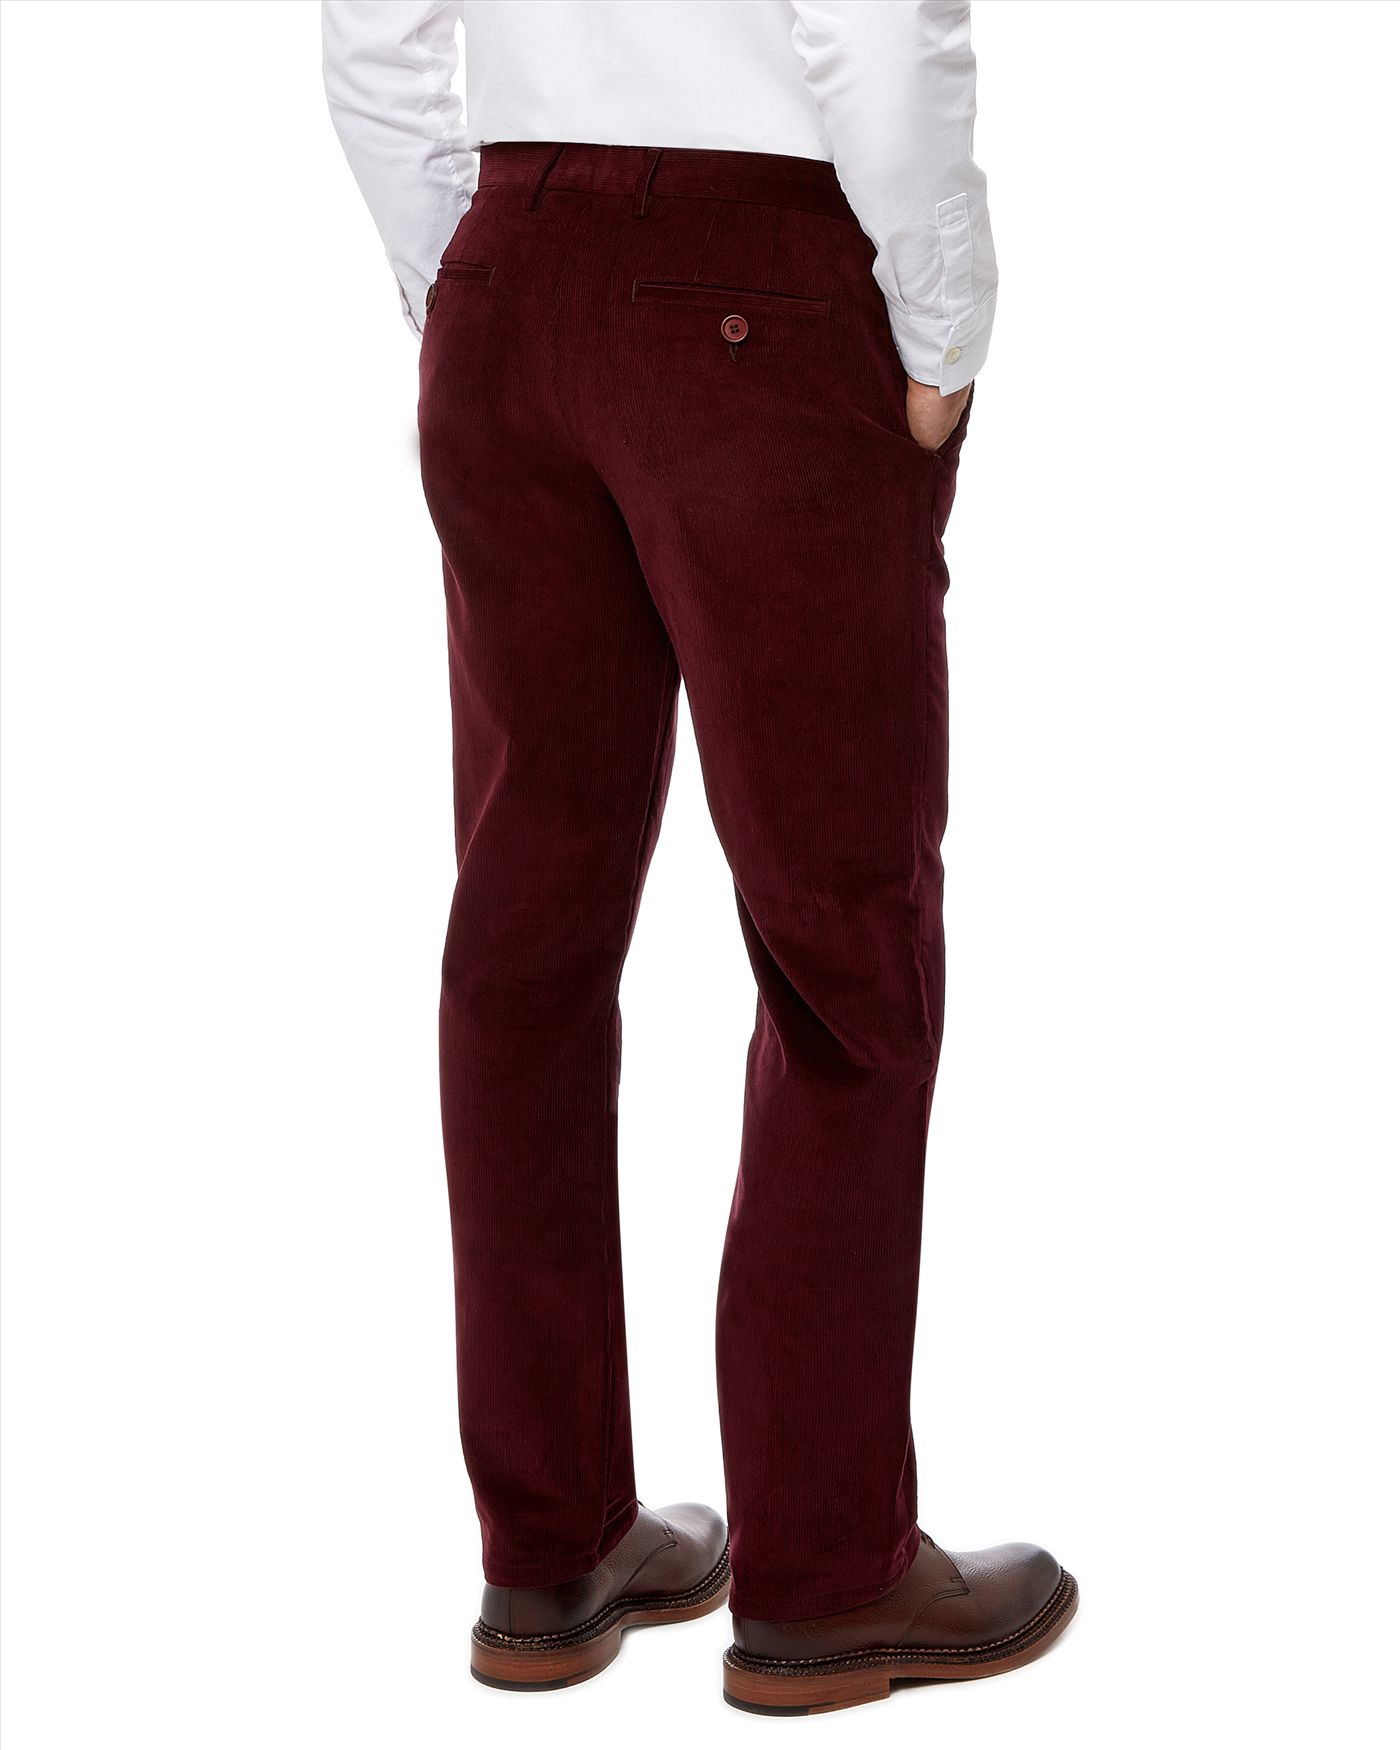 We love the slim look of these pants, but if you are not used to a slimmer cut of trousers we recommend going up a size. If you like the look of the shoes in the photo, also buy a pair of our Purple Men's Oxfords.